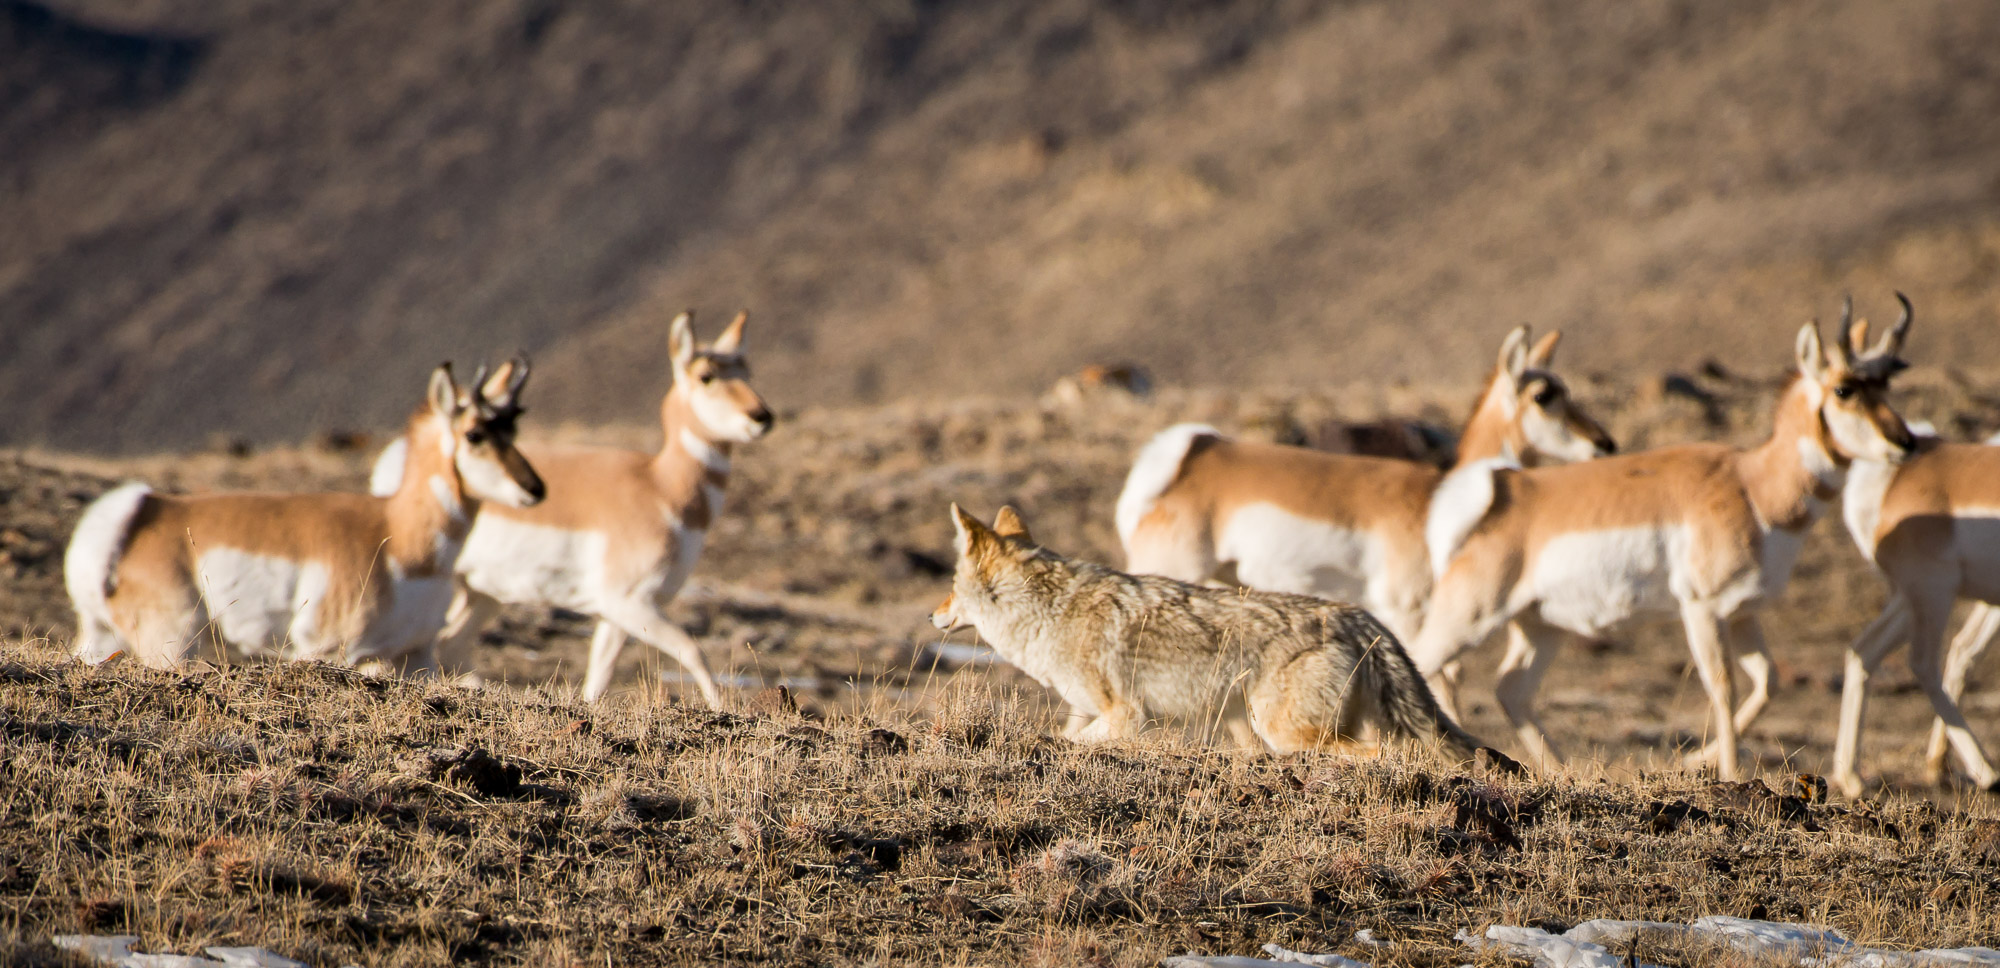 Coyote and Pronghorn - Yellowstone National Park, Wyoming